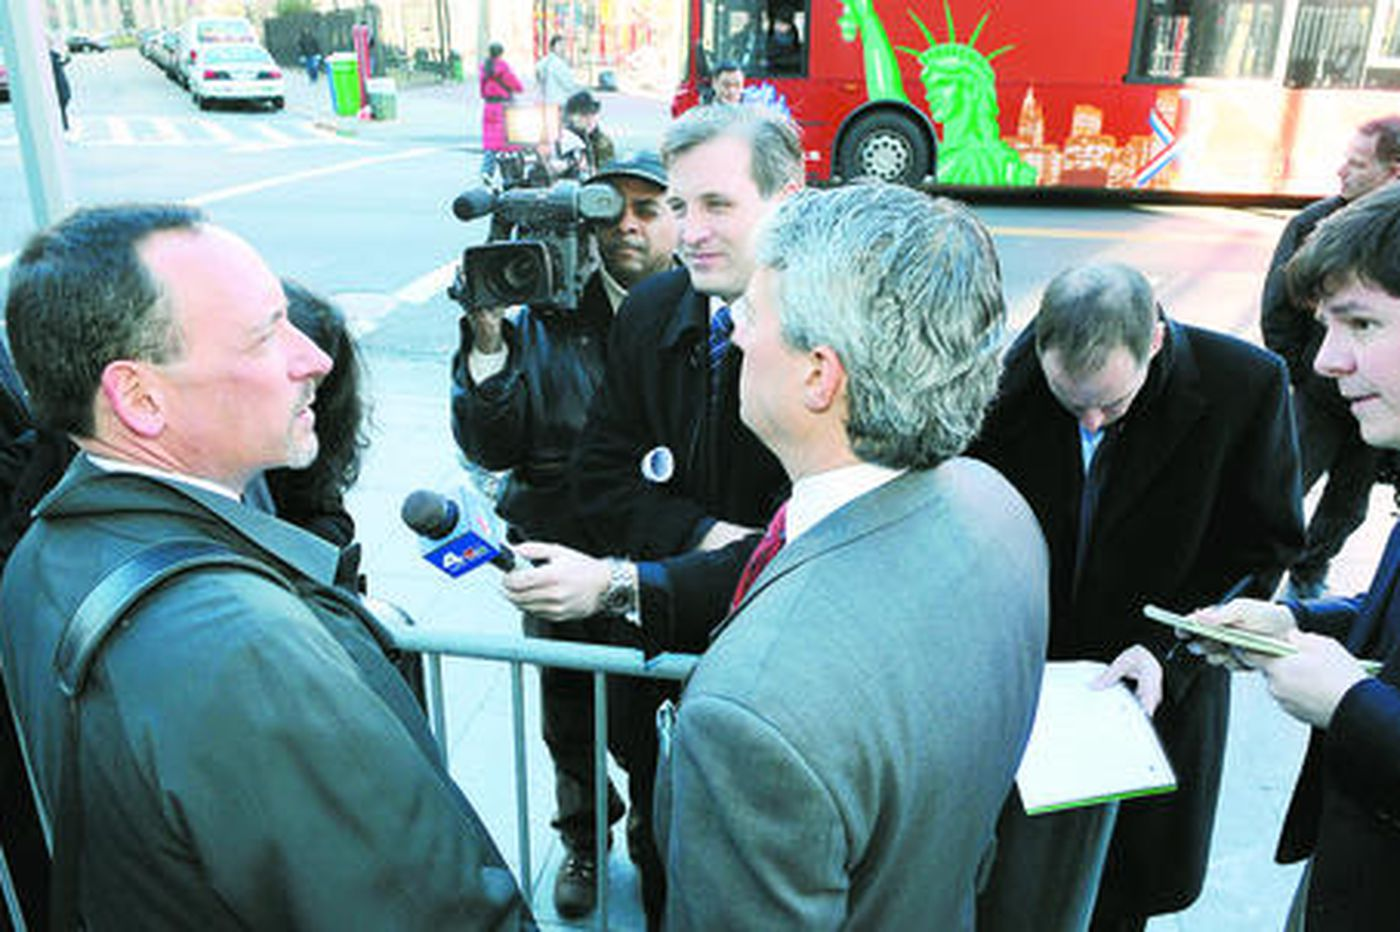 Madoff reaches a deal with feds